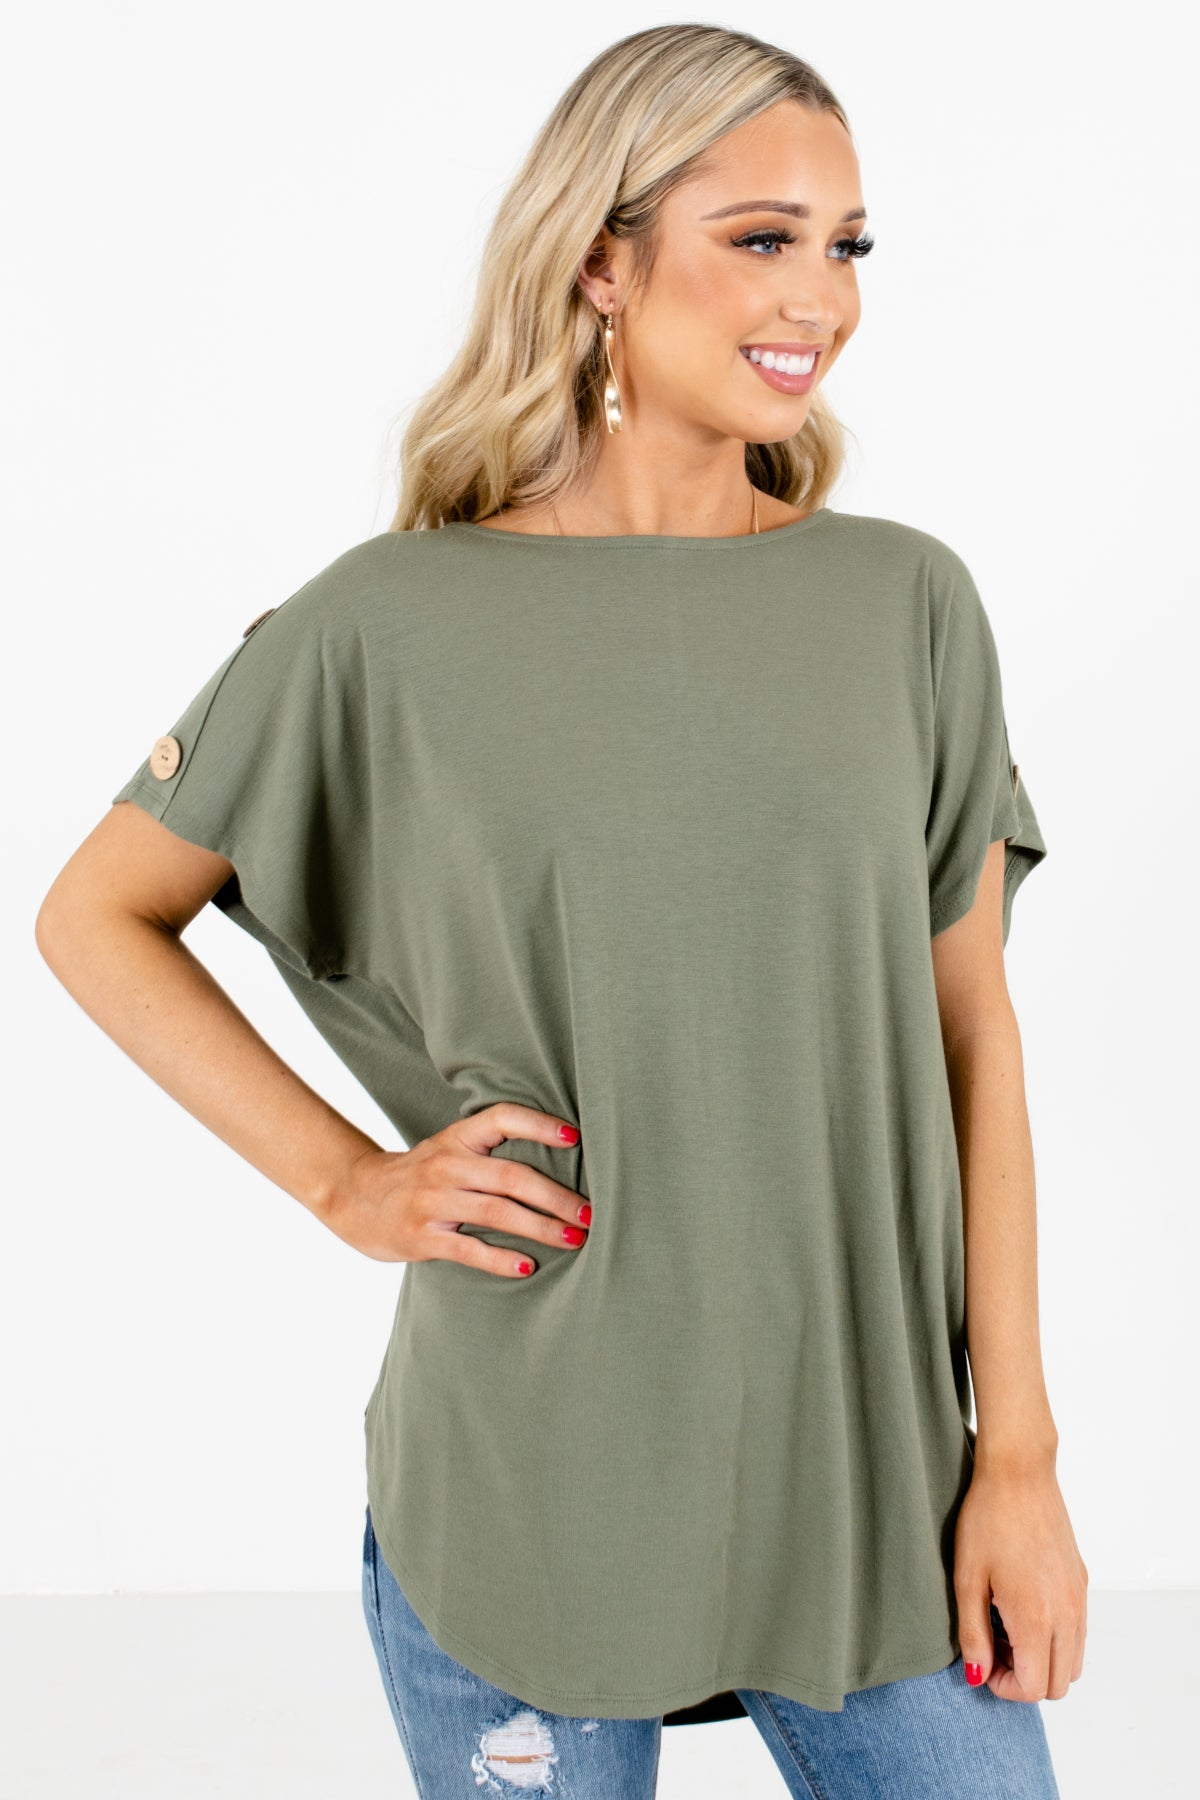 Green Decorative Button Boutique Tops for Women